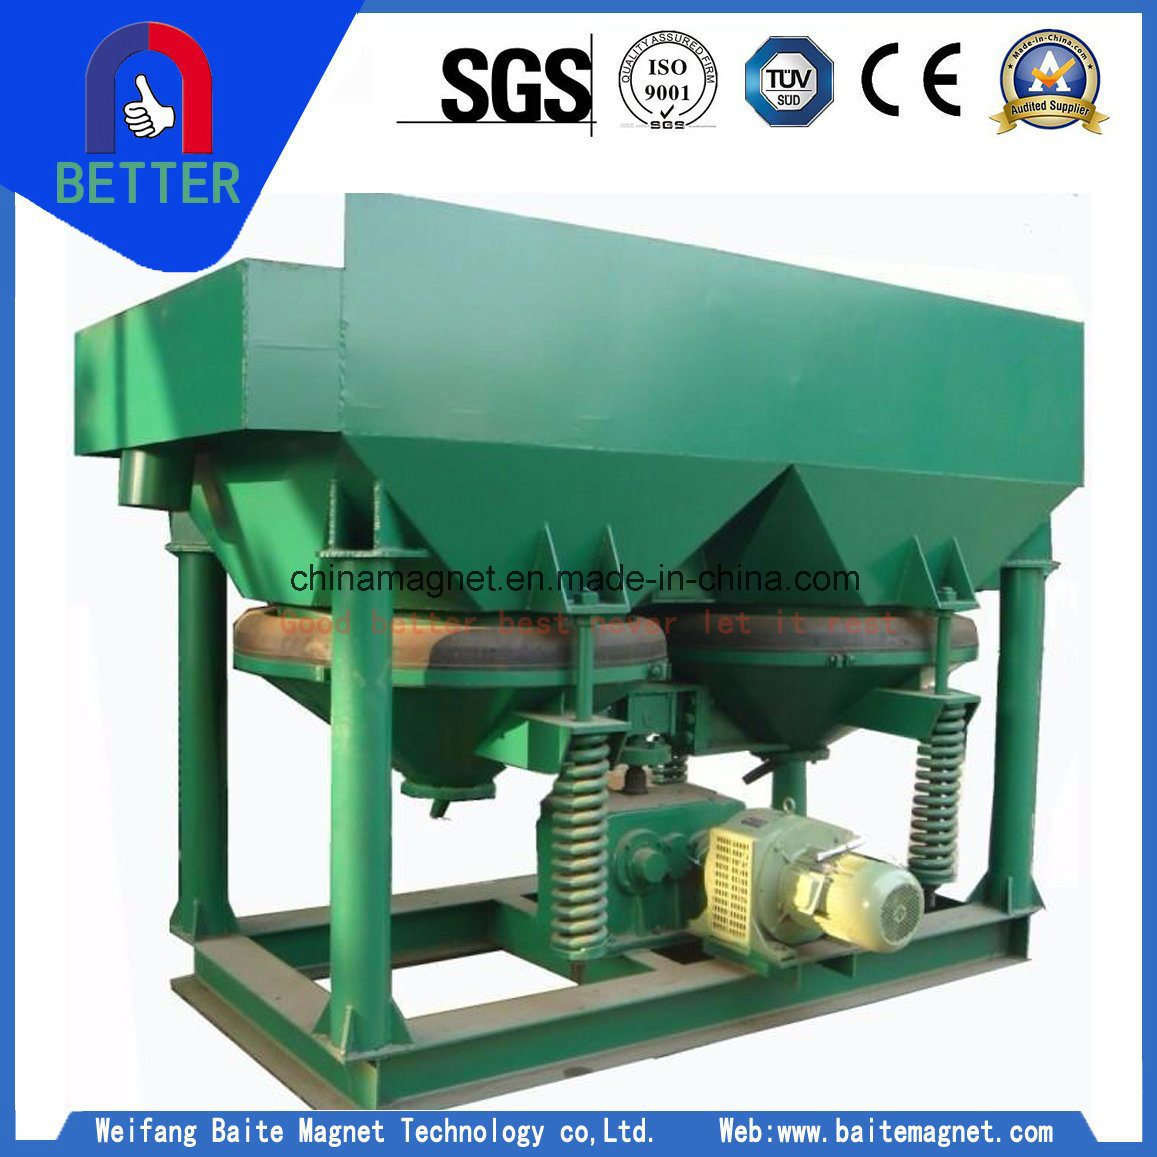 Diaphragm Jig Machine/Gold Jig Concentrator for Alluvial Gold / Tin Mining Beneficiation